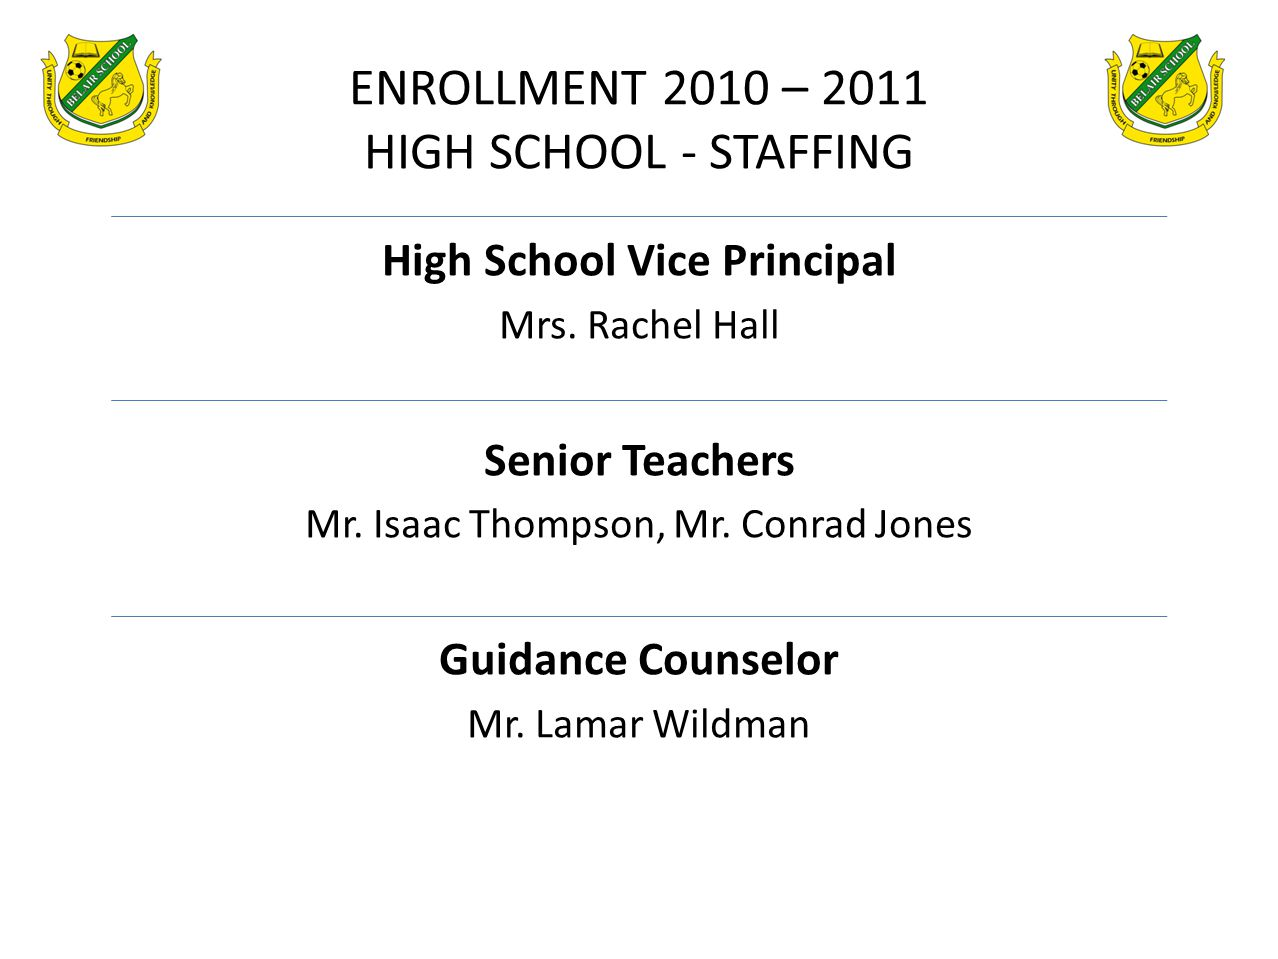 ENROLLMENT 2010 – 2011 HIGH SCHOOL - STAFFING